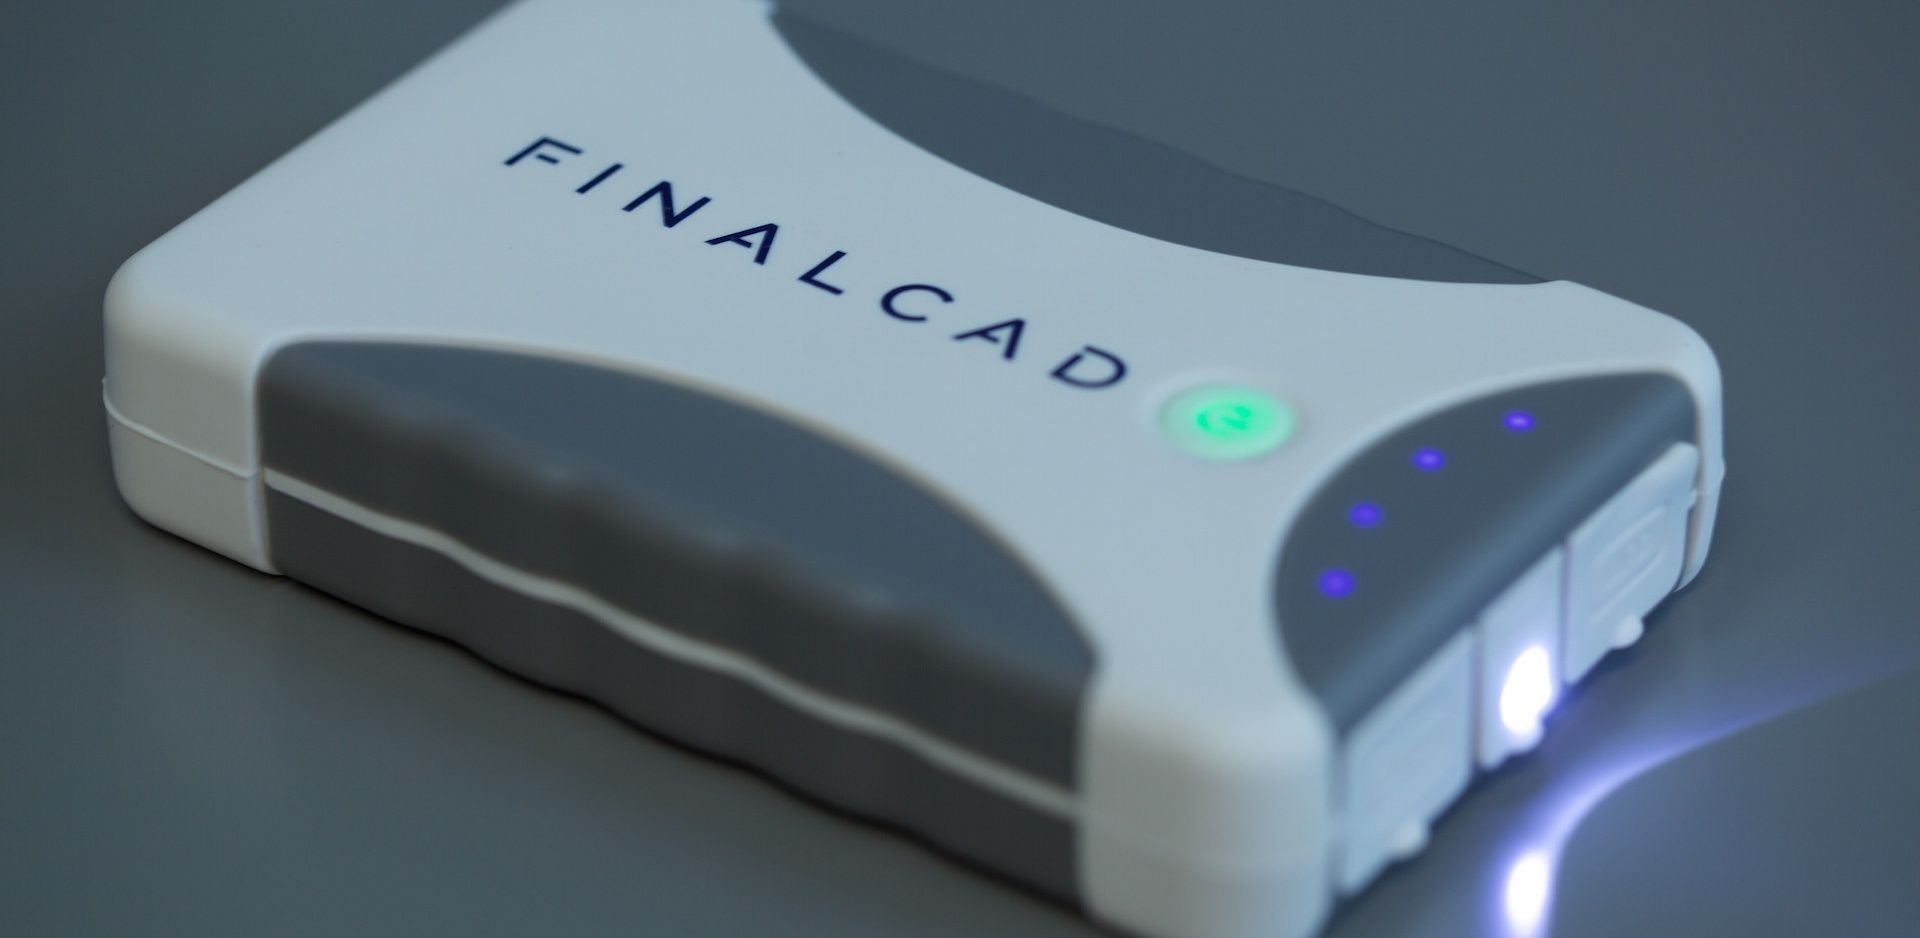 finalcad-powerbank-069878-edited.jpg